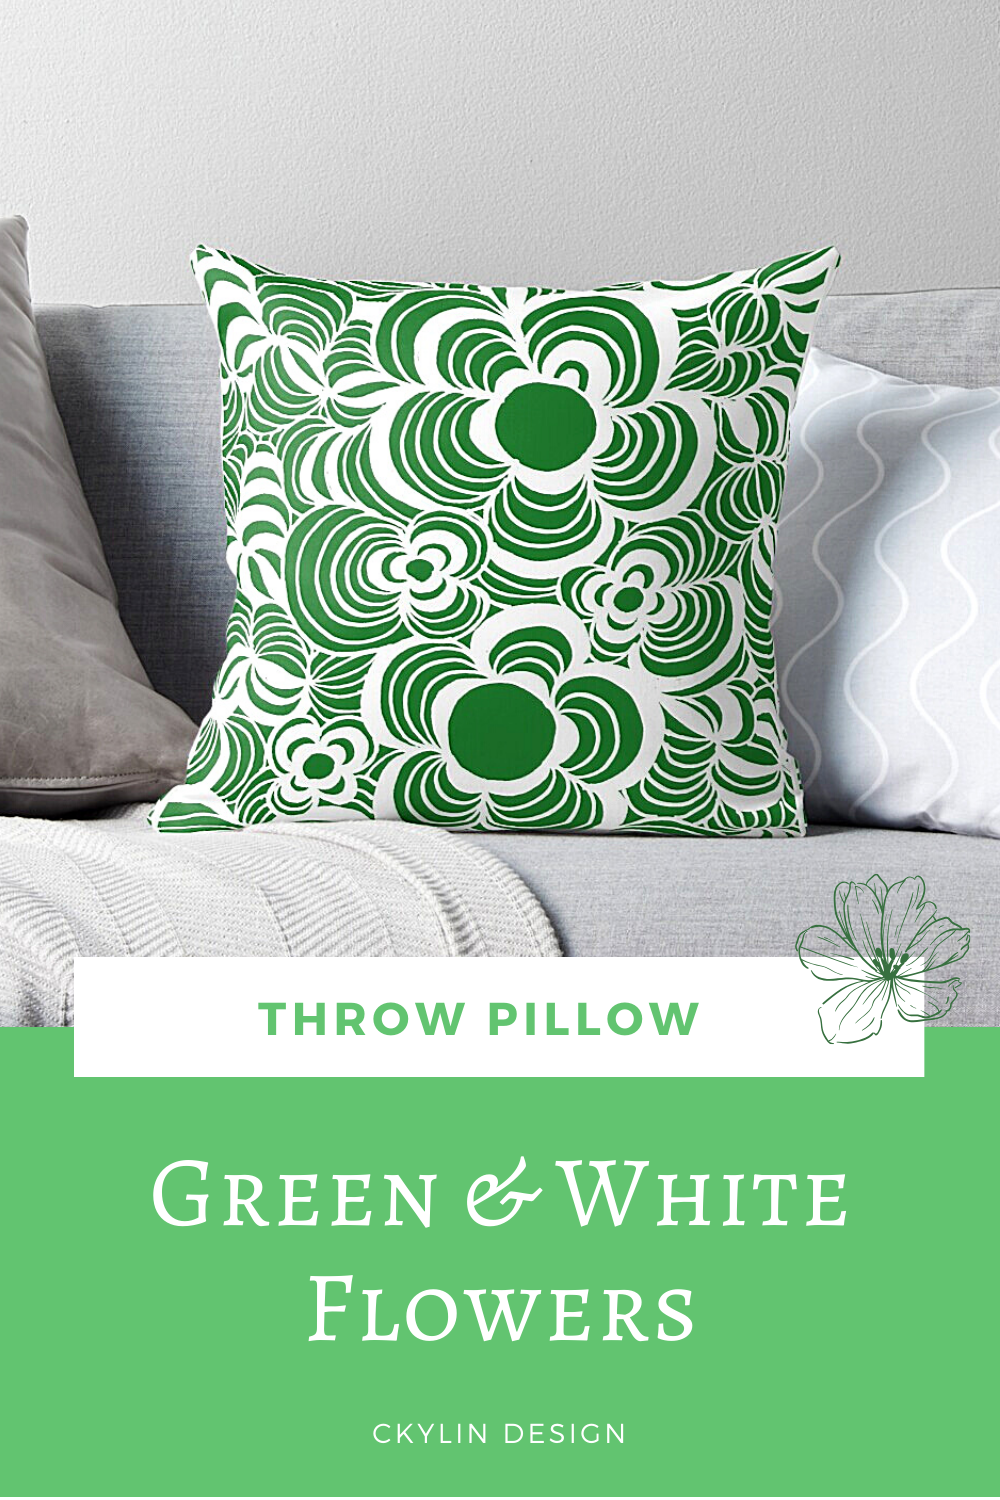 Throw pillow with a green and white floral pattern is now available in my online store over at Redbubble. This design is inspired by all the flowers blooming around us. Perfect for summer! Maybe this design pillow is perfect for the hammock?  #throwpillow #pillowdesign #flowerpattern #pillowlove #flowerlove #pillowfight #homedecor #couchinspo